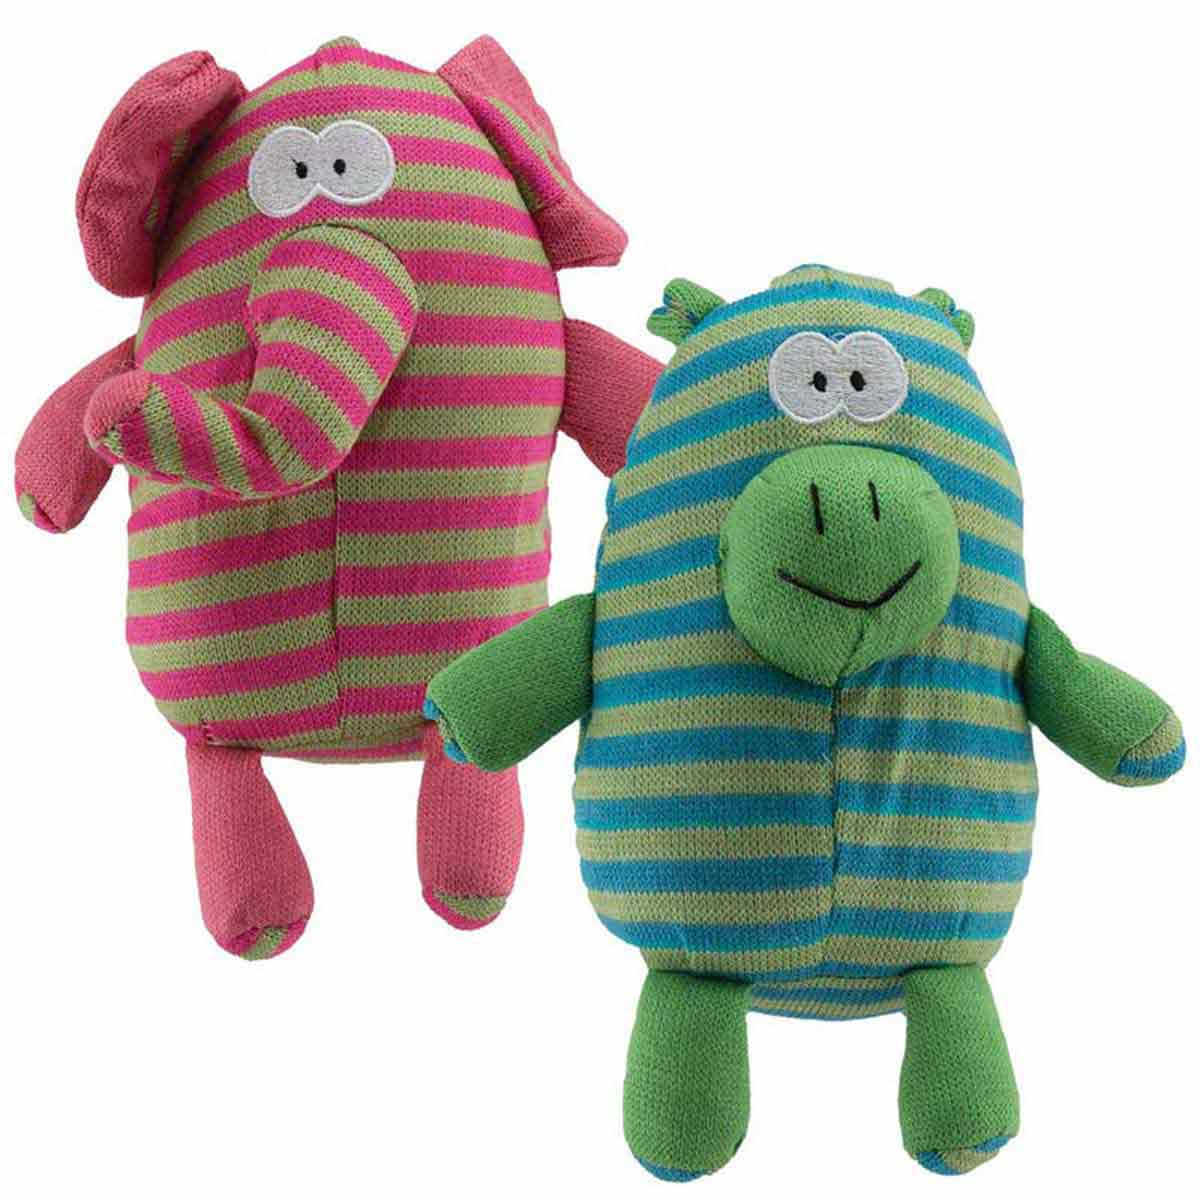 Dawgeee Toy Plush Striped Jungle Animals - 10 inches